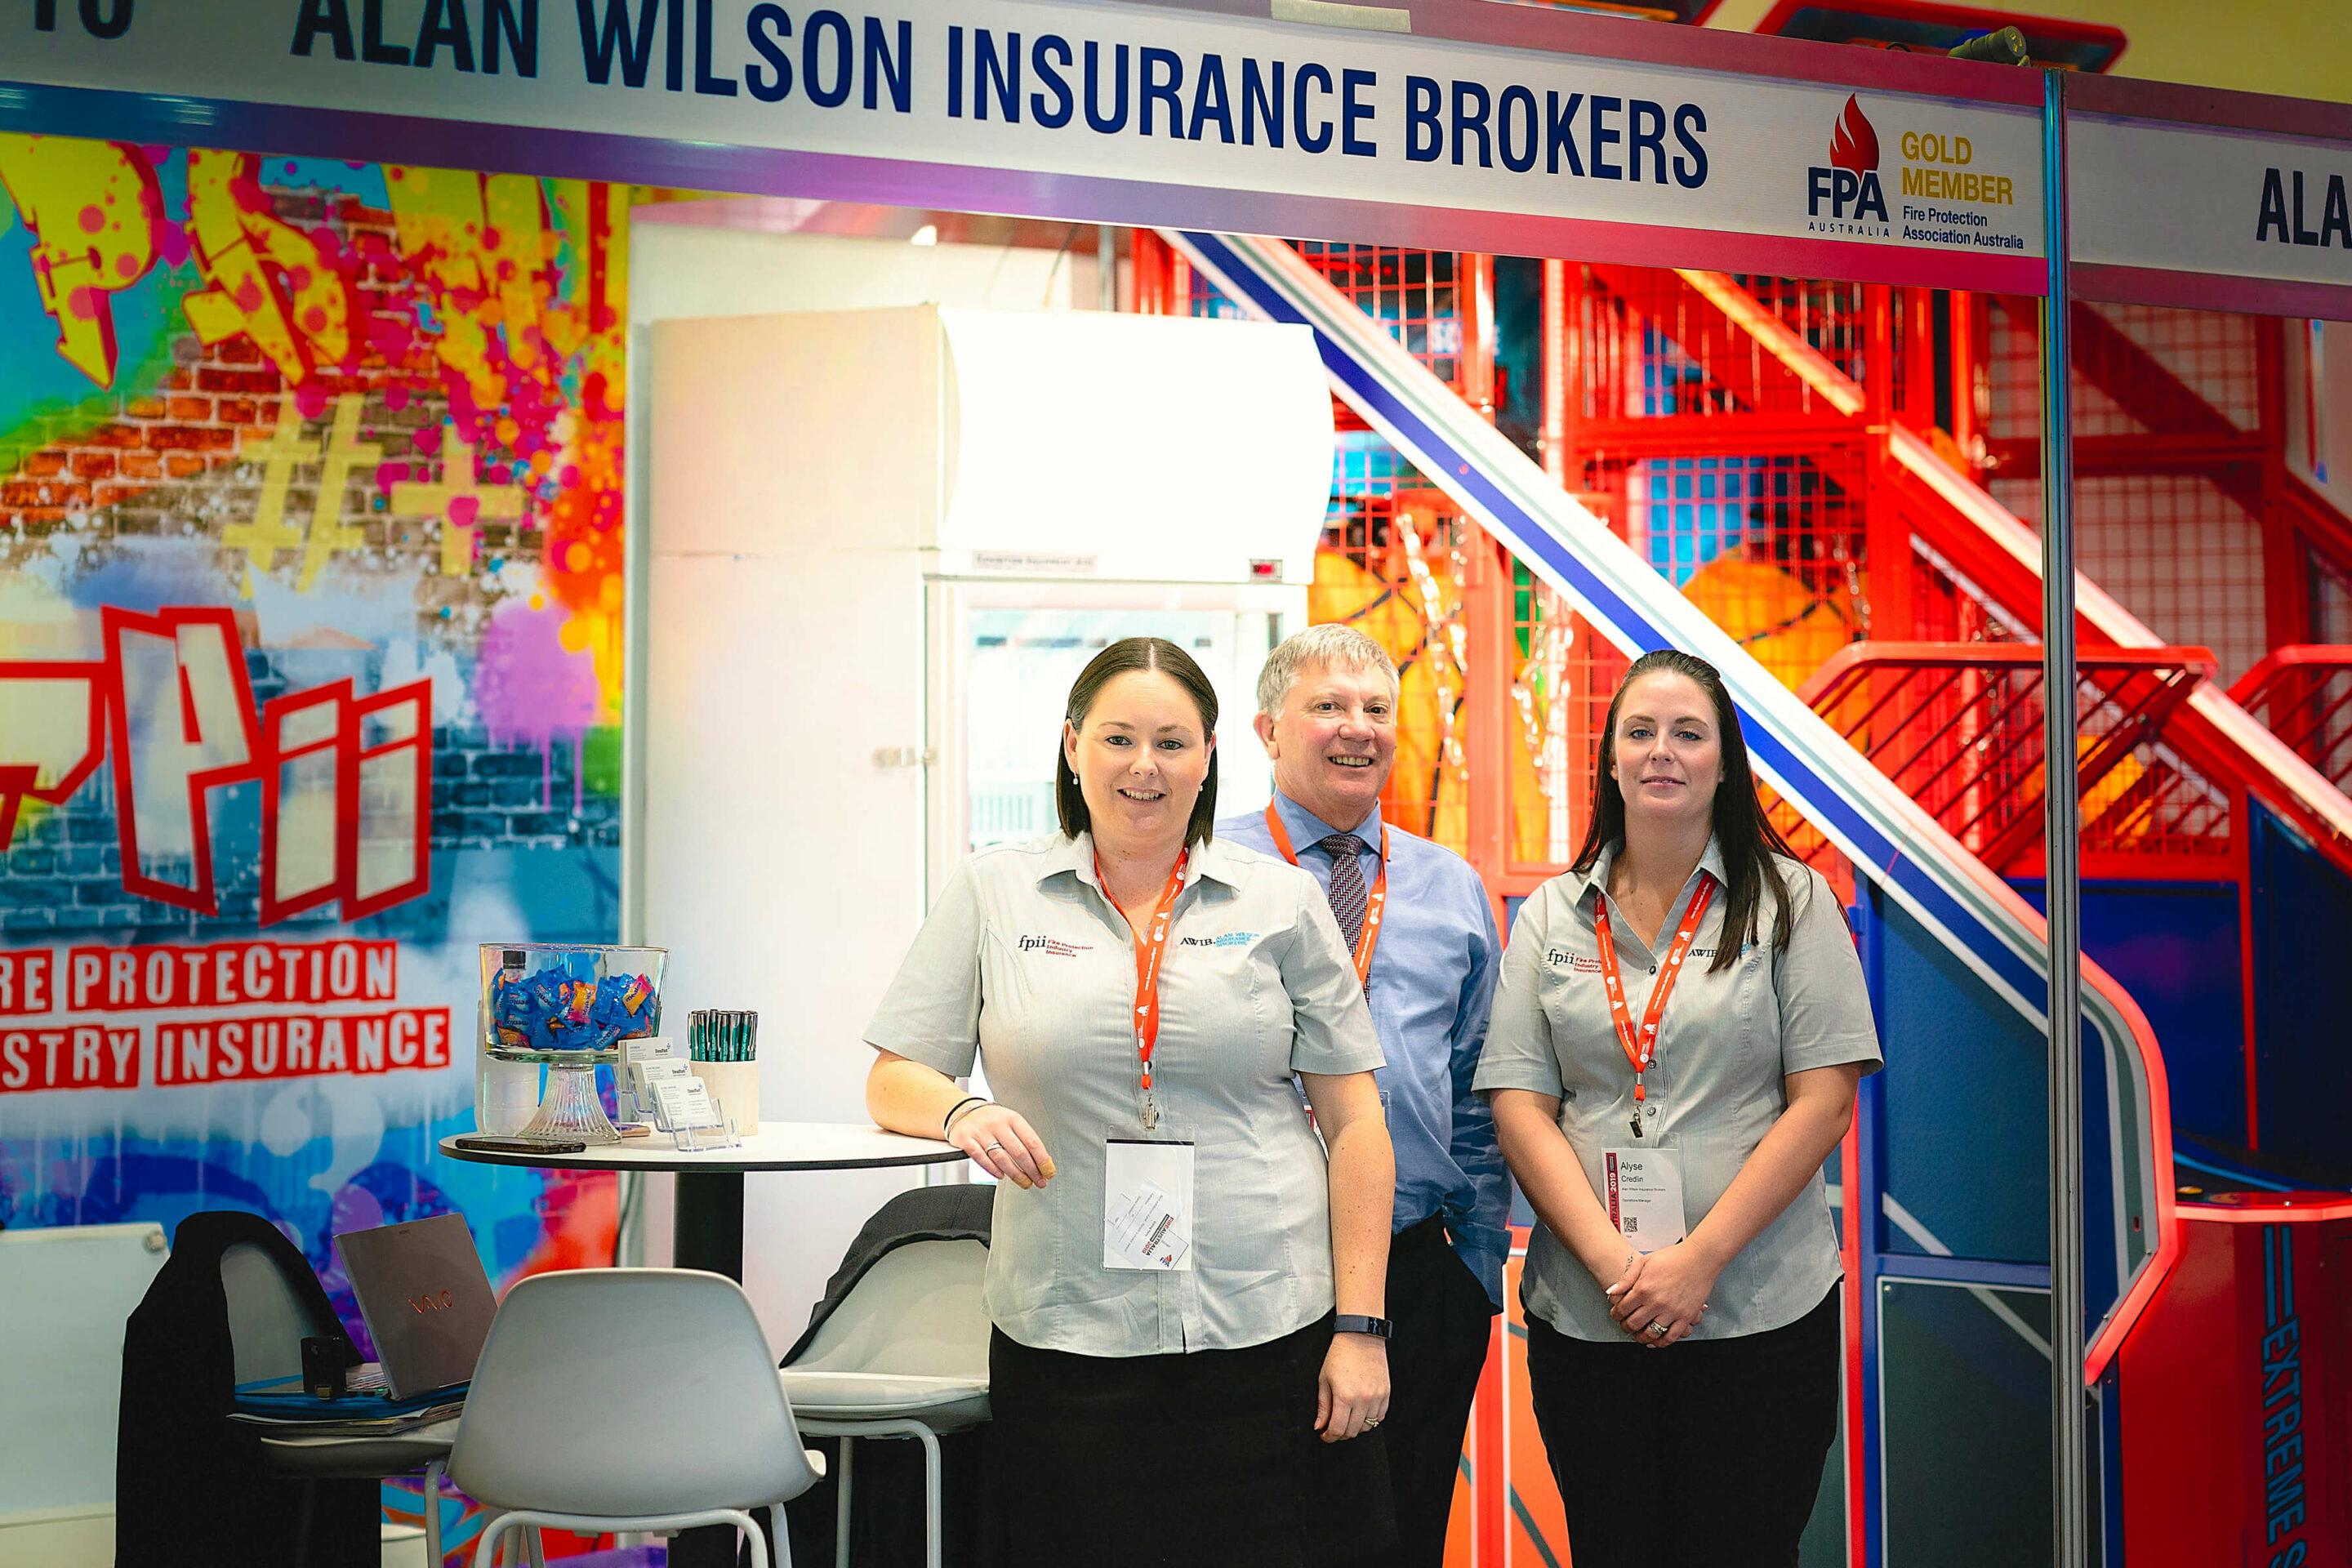 Staff at Alan Wilson Insurance event